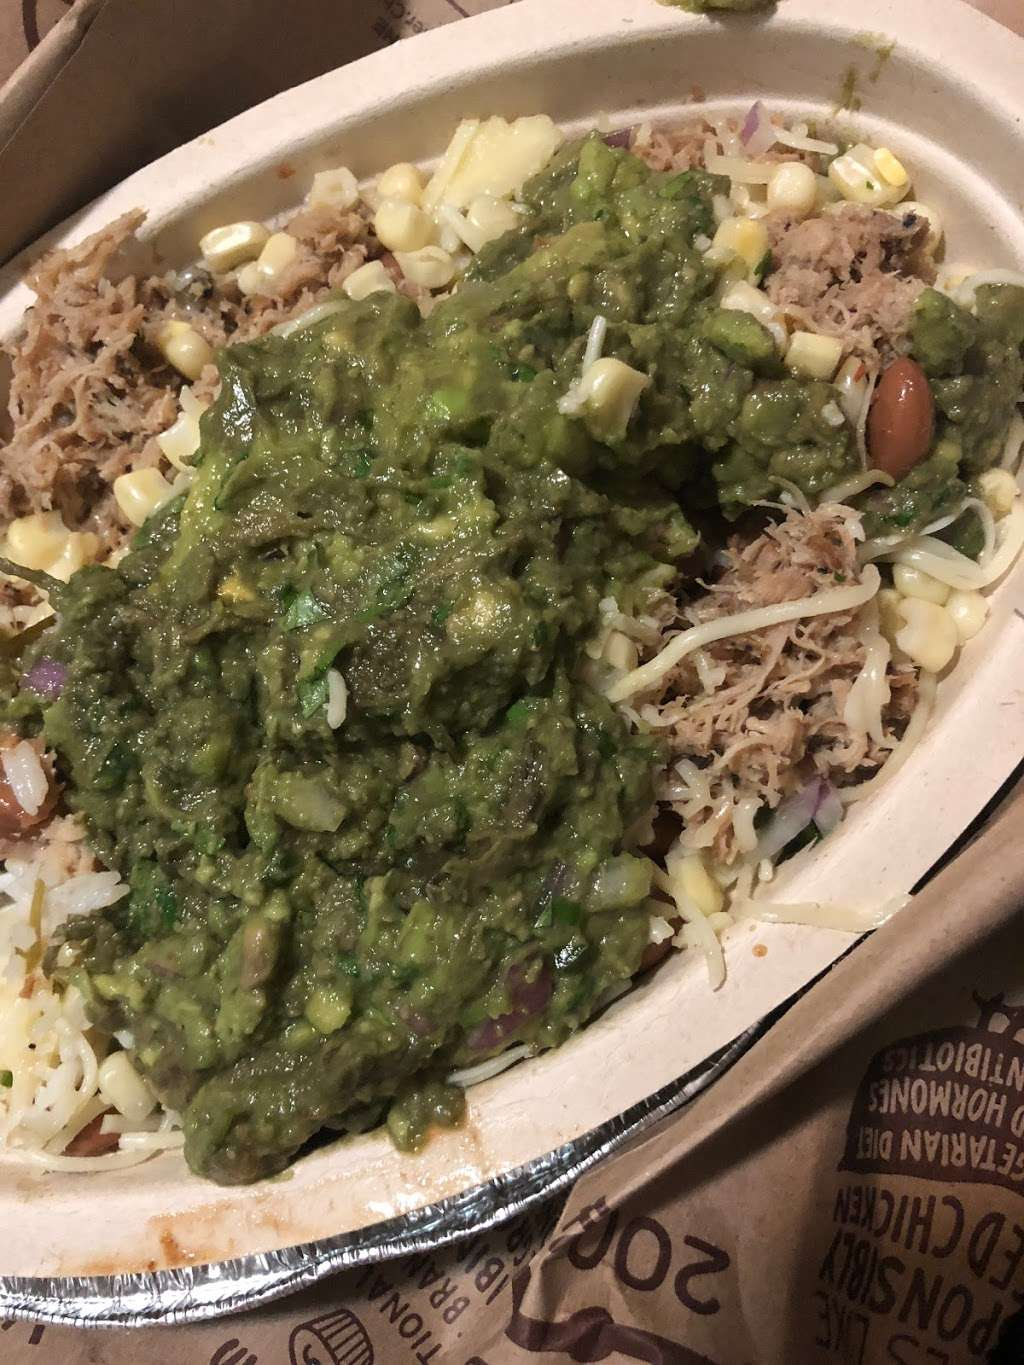 Chipotle Mexican Grill - restaurant    Photo 6 of 10   Address: 347 Flatbush Ave, Brooklyn, NY 11238, USA   Phone: (718) 230-3102